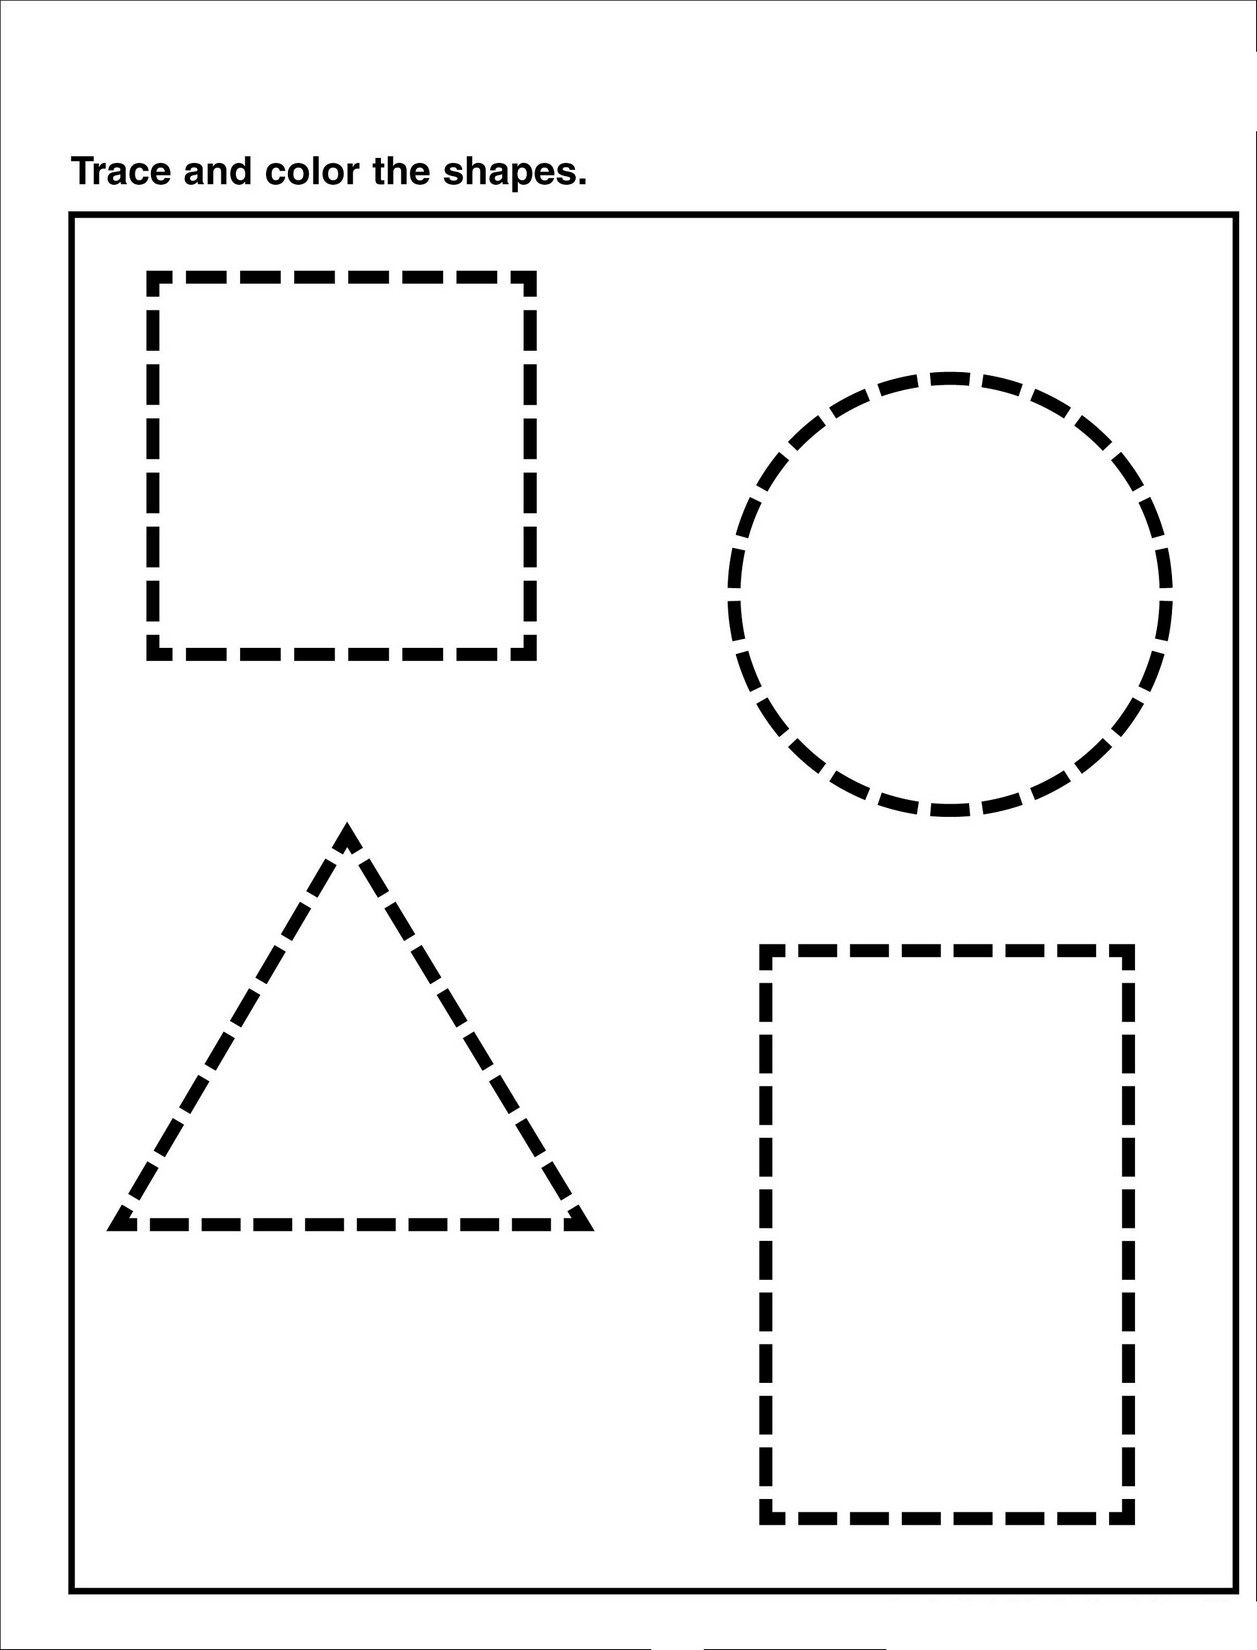 Preschool Tracing Pages | Shape Tracing Worksheets, Shape